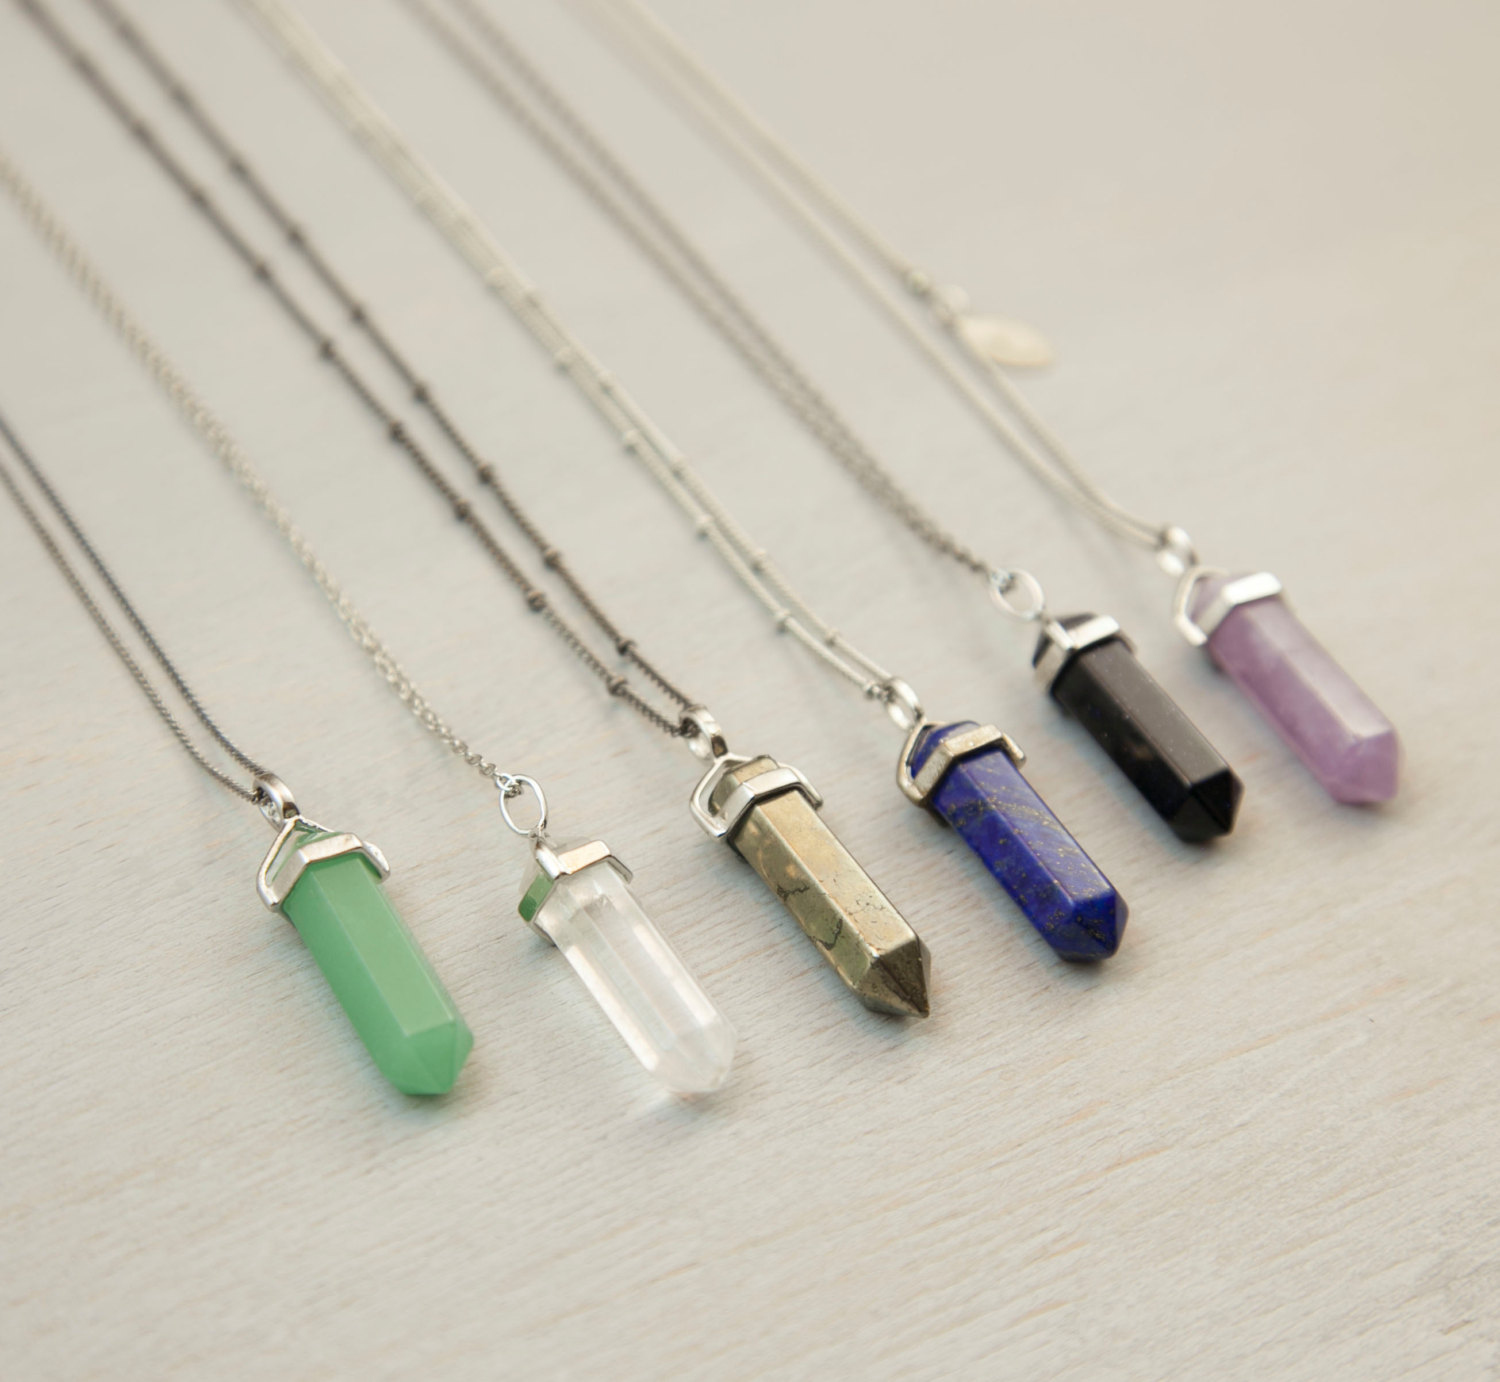 Crystal point long necklace long chakra crystal pendant necklace crystal point long necklace long chakra crystal pendant necklace natural stone crystal point with aloadofball Image collections